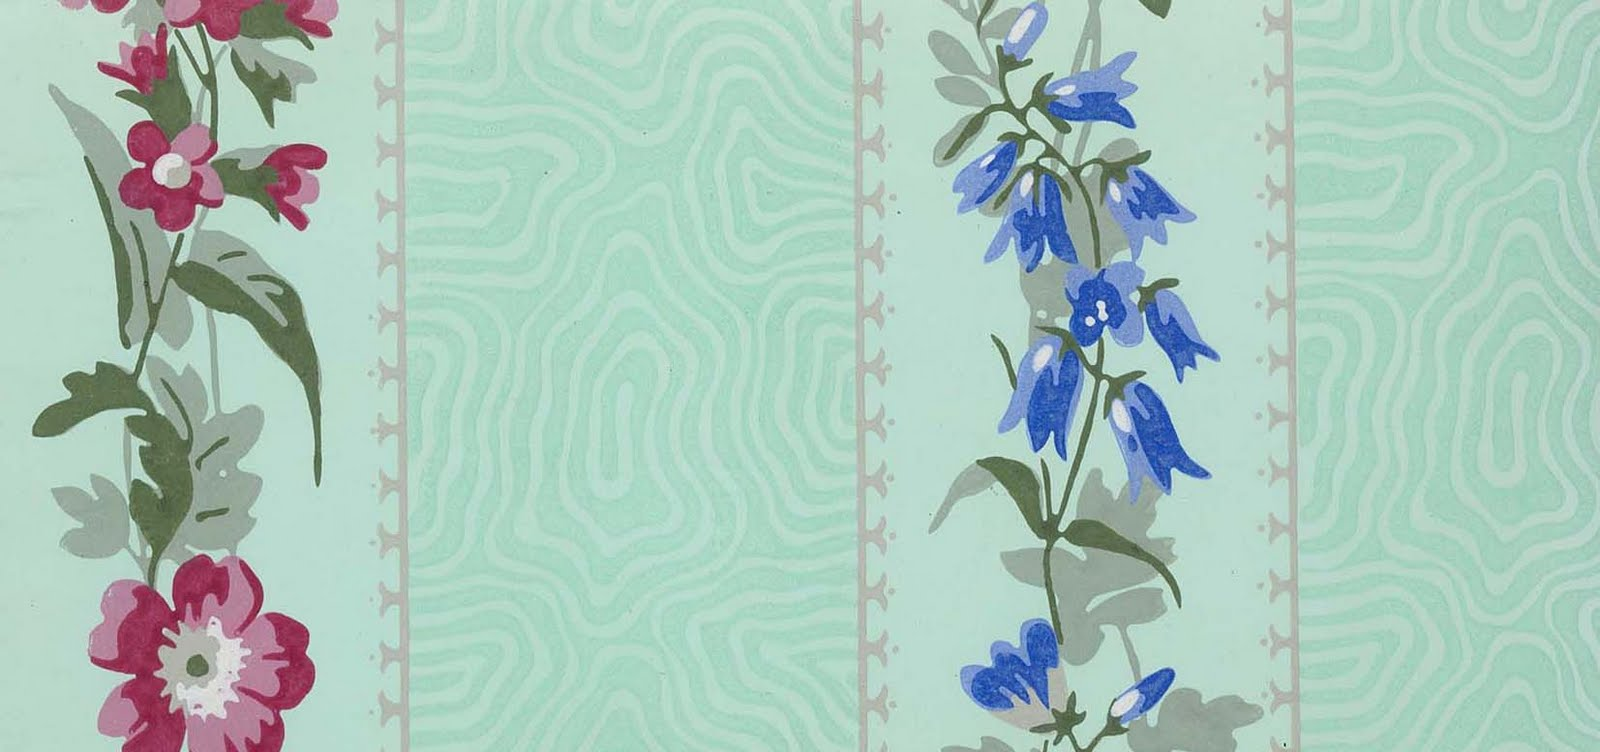 Illustration French wallpaper design for a bedroom 1849 1600x752